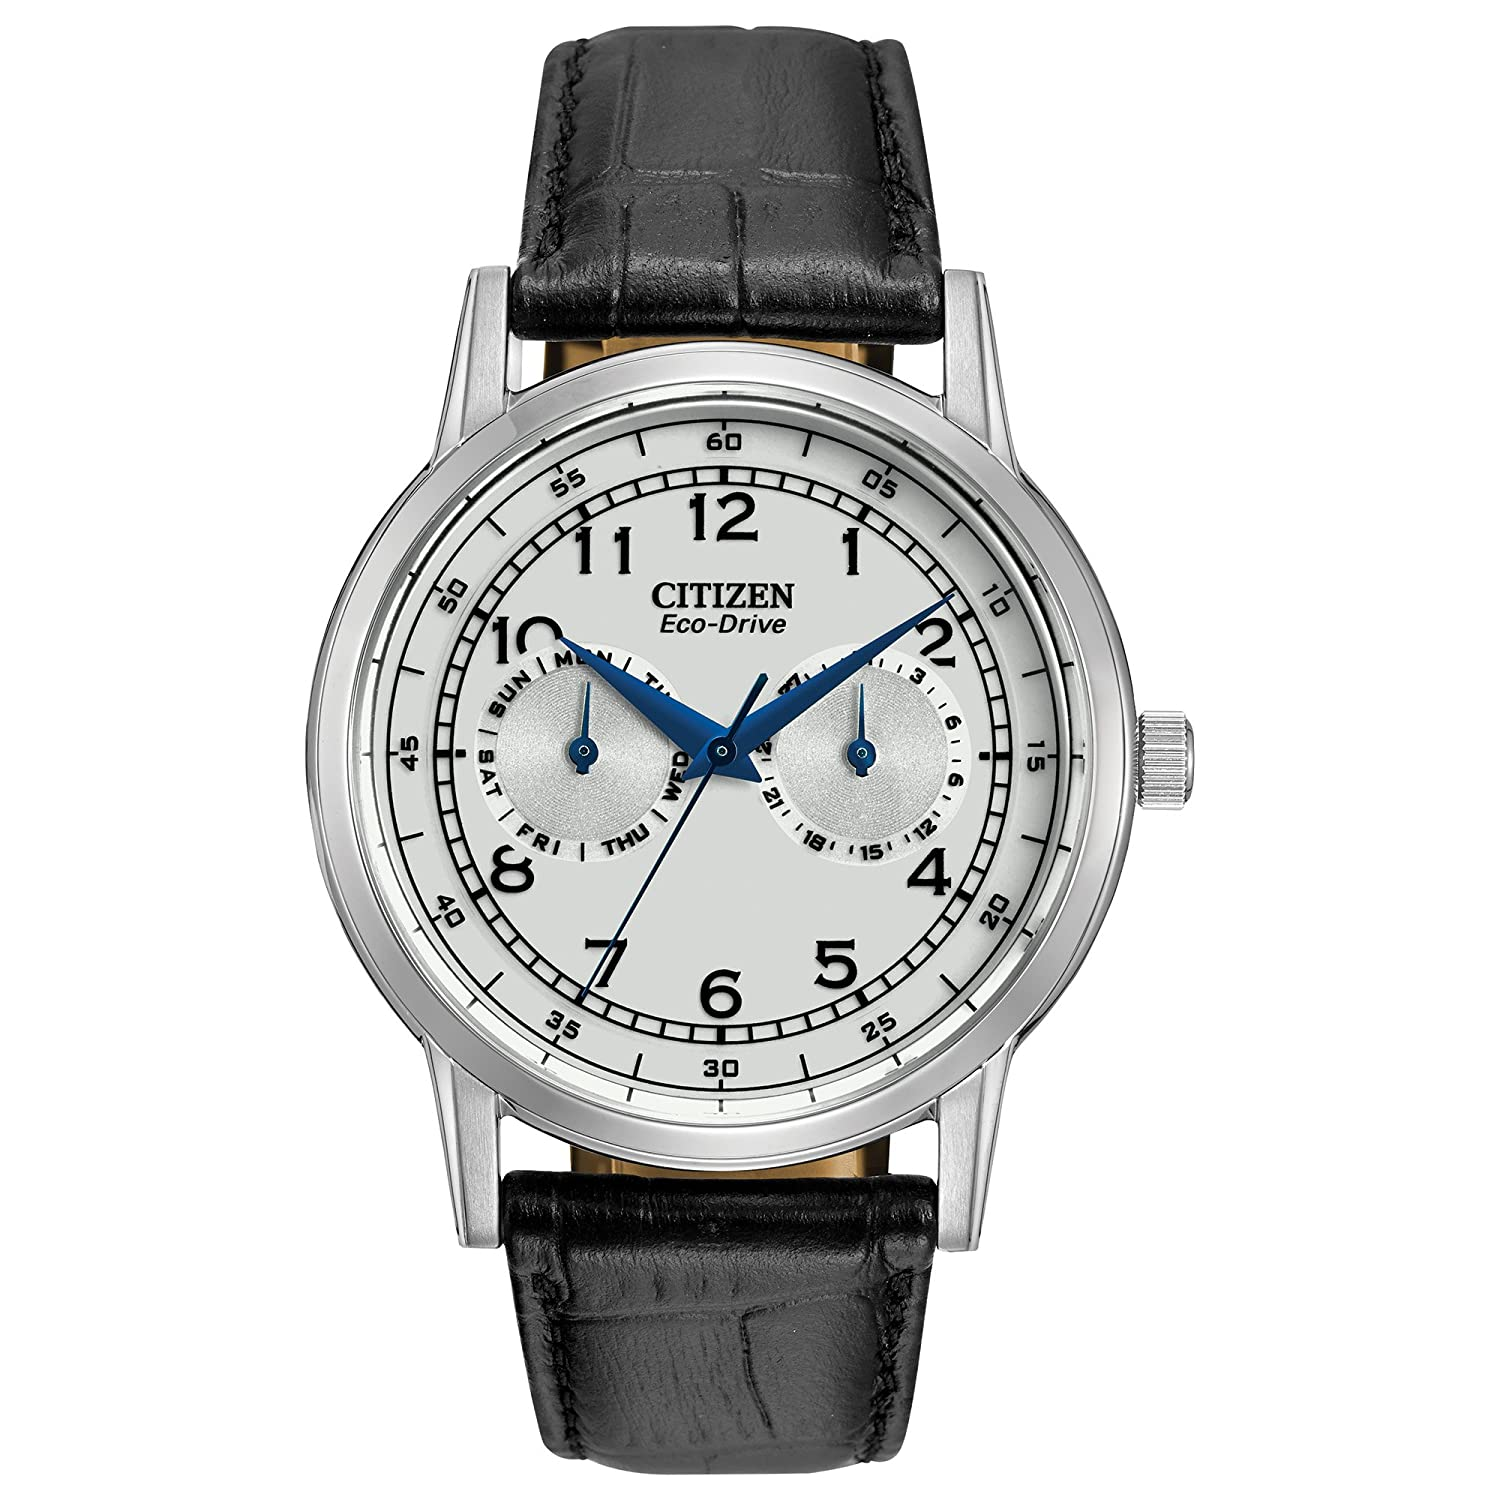 d0707b4a0b0994 Amazon.com: Citizen Men's Eco-Drive Stainless Steel Casual Watch with  Day/Date, AO9000-06B: Watches